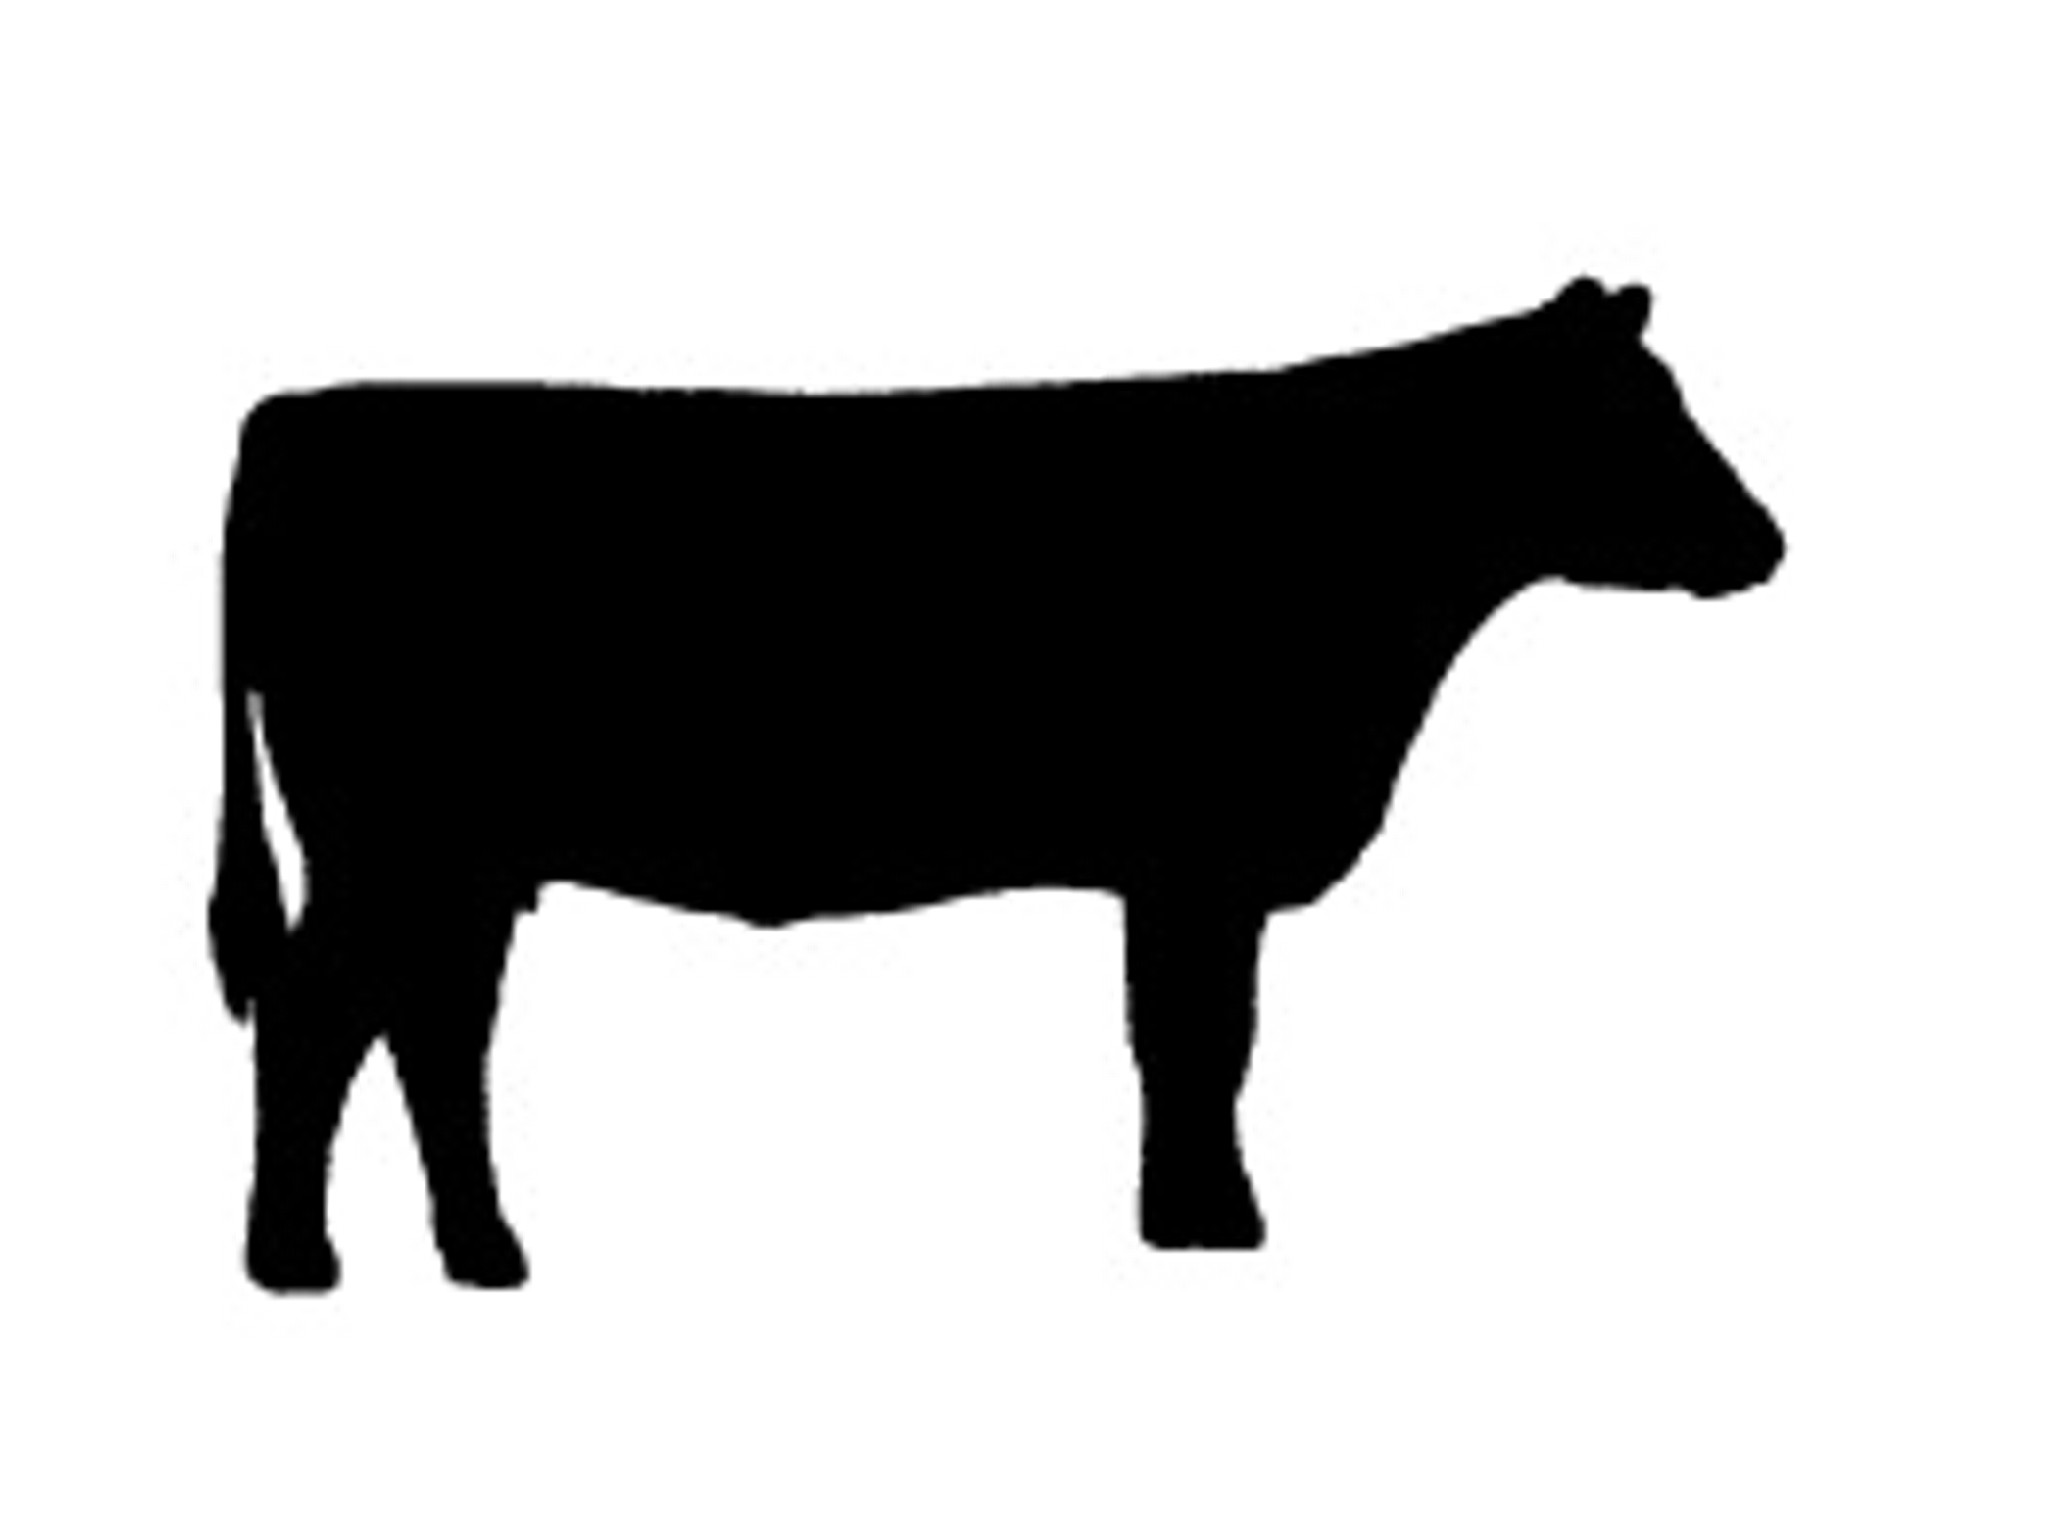 Beef clipart silhouette Silhouette cattle cow 5 silhouette